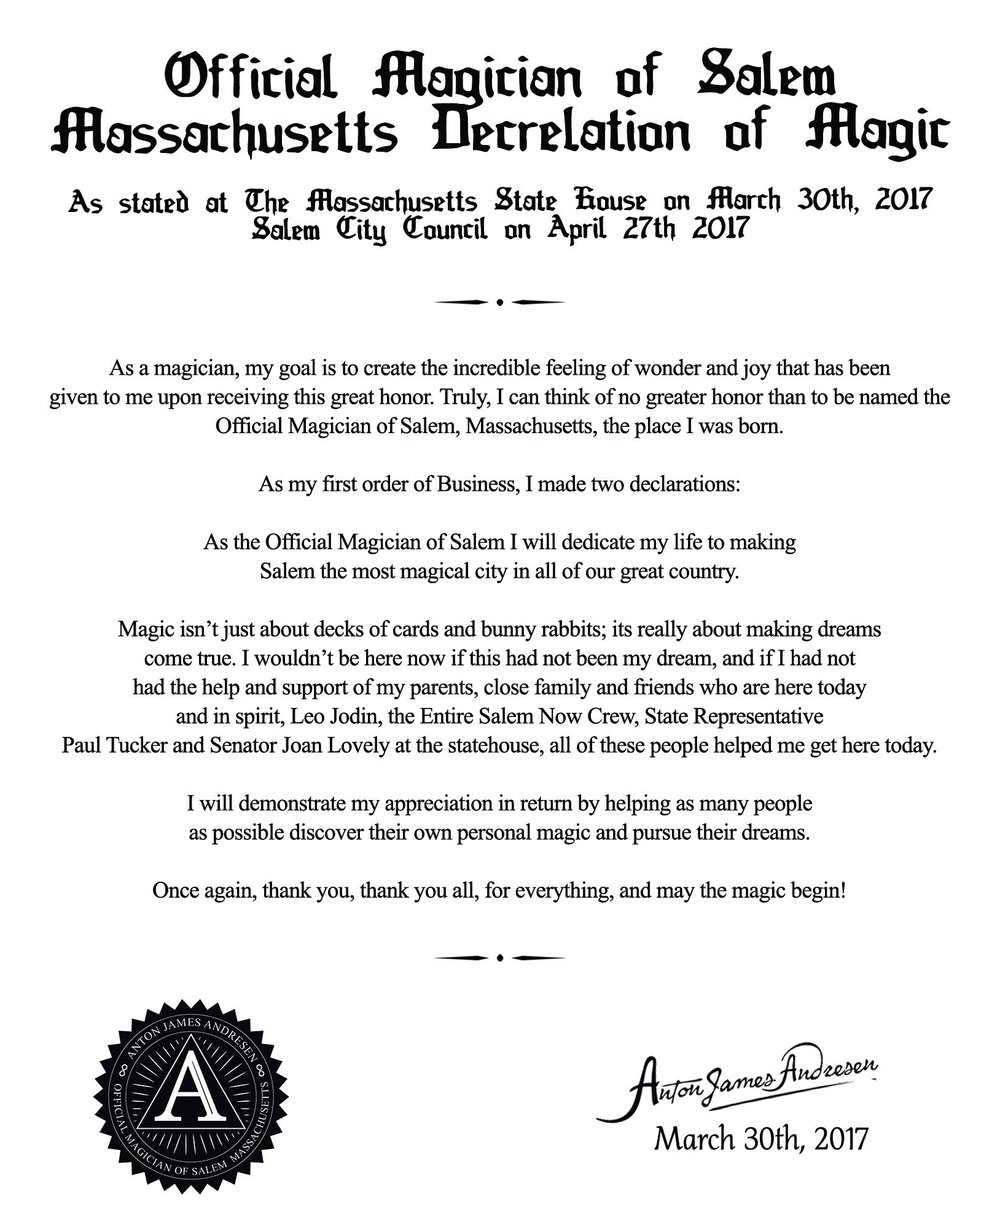 The Official Magician's Declaration of Magic